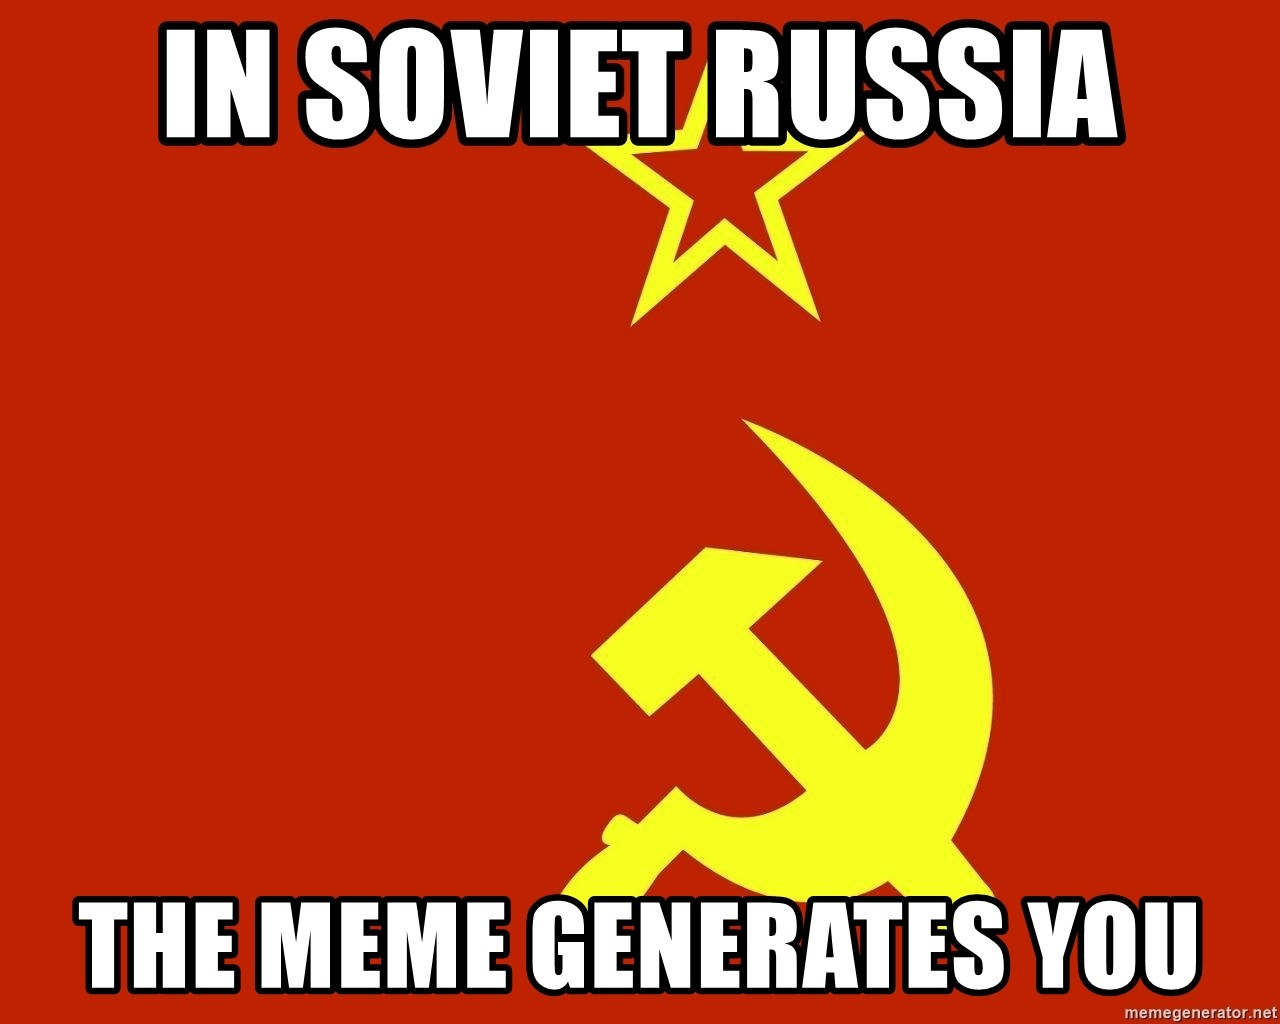 In Soviet Russia - In Soviet Russia The Meme Generates You